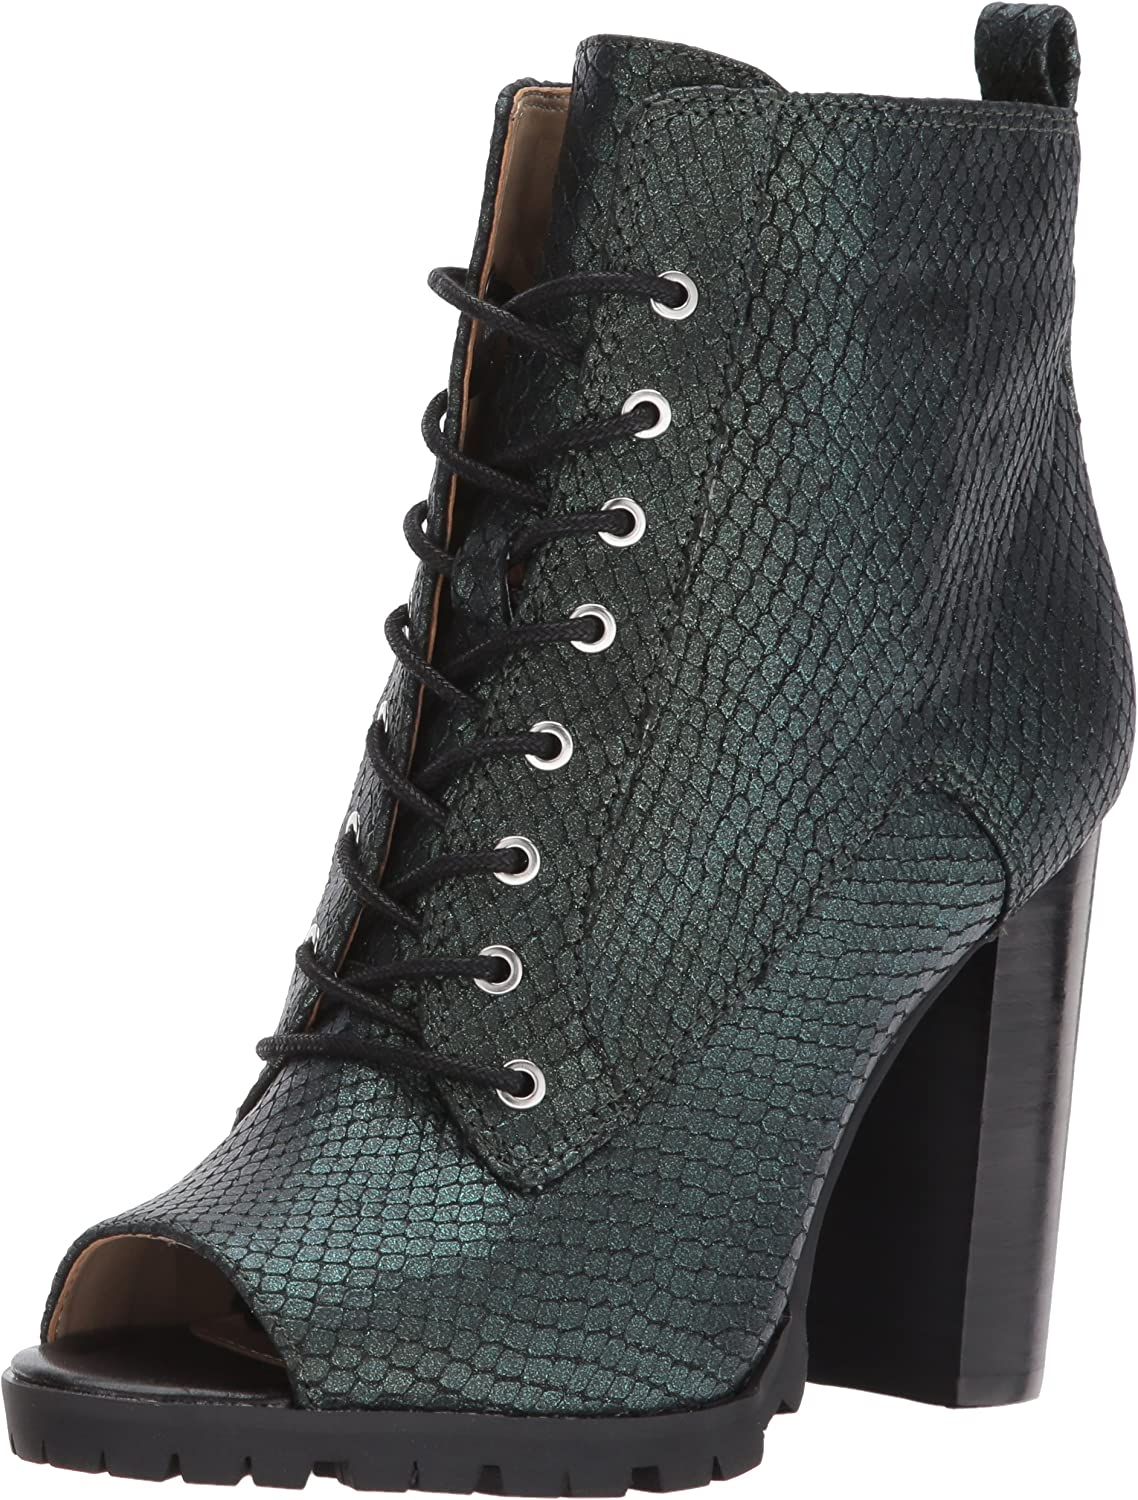 Katy Perry Womens The Monica Ankle Boot